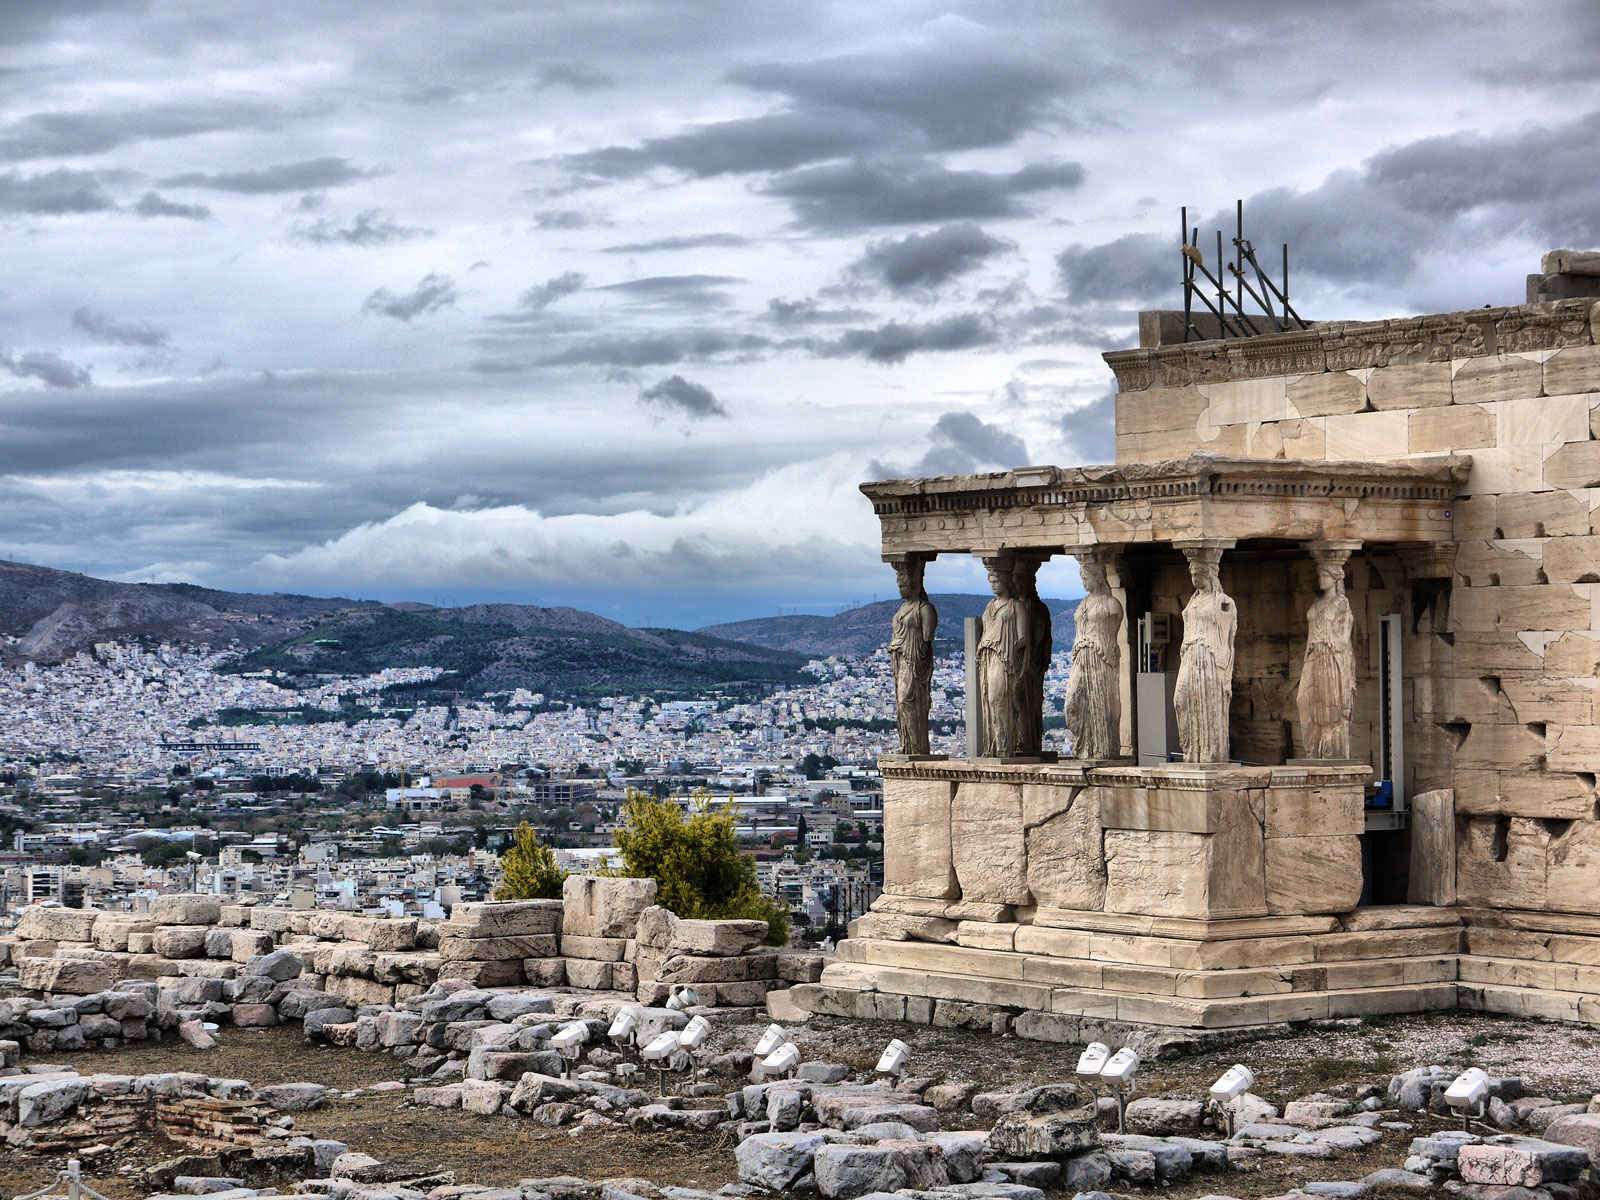 Admiring the Porch of The Maidens at The Erechtheum - Athens, Greece